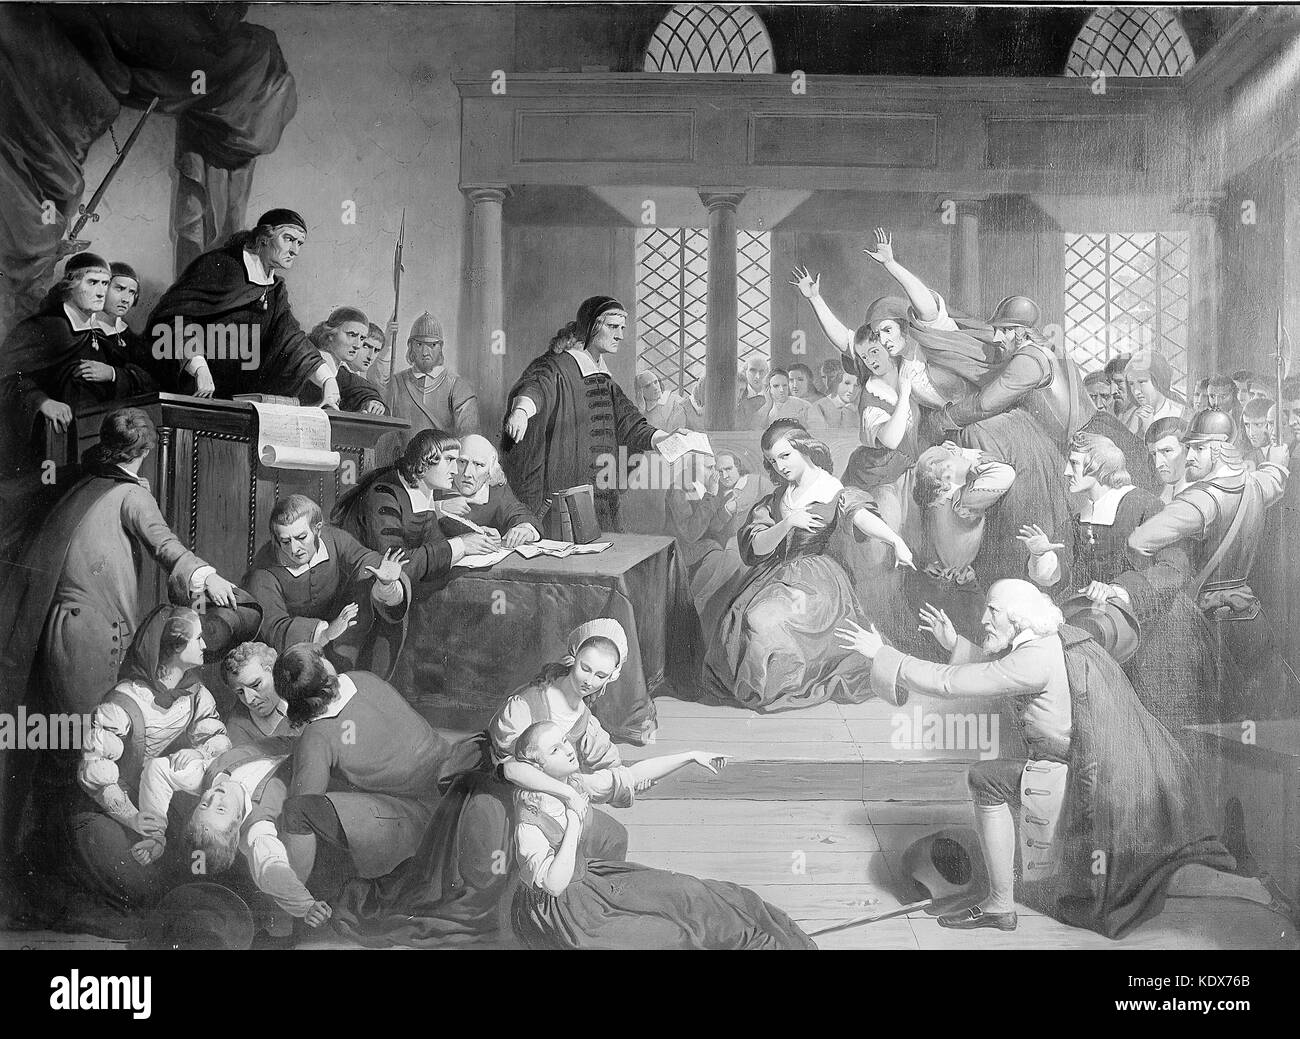 Salem Witch Trials, 1692 - 1693, Trial of George Jacobs of Salem for witchcraft - Stock Image